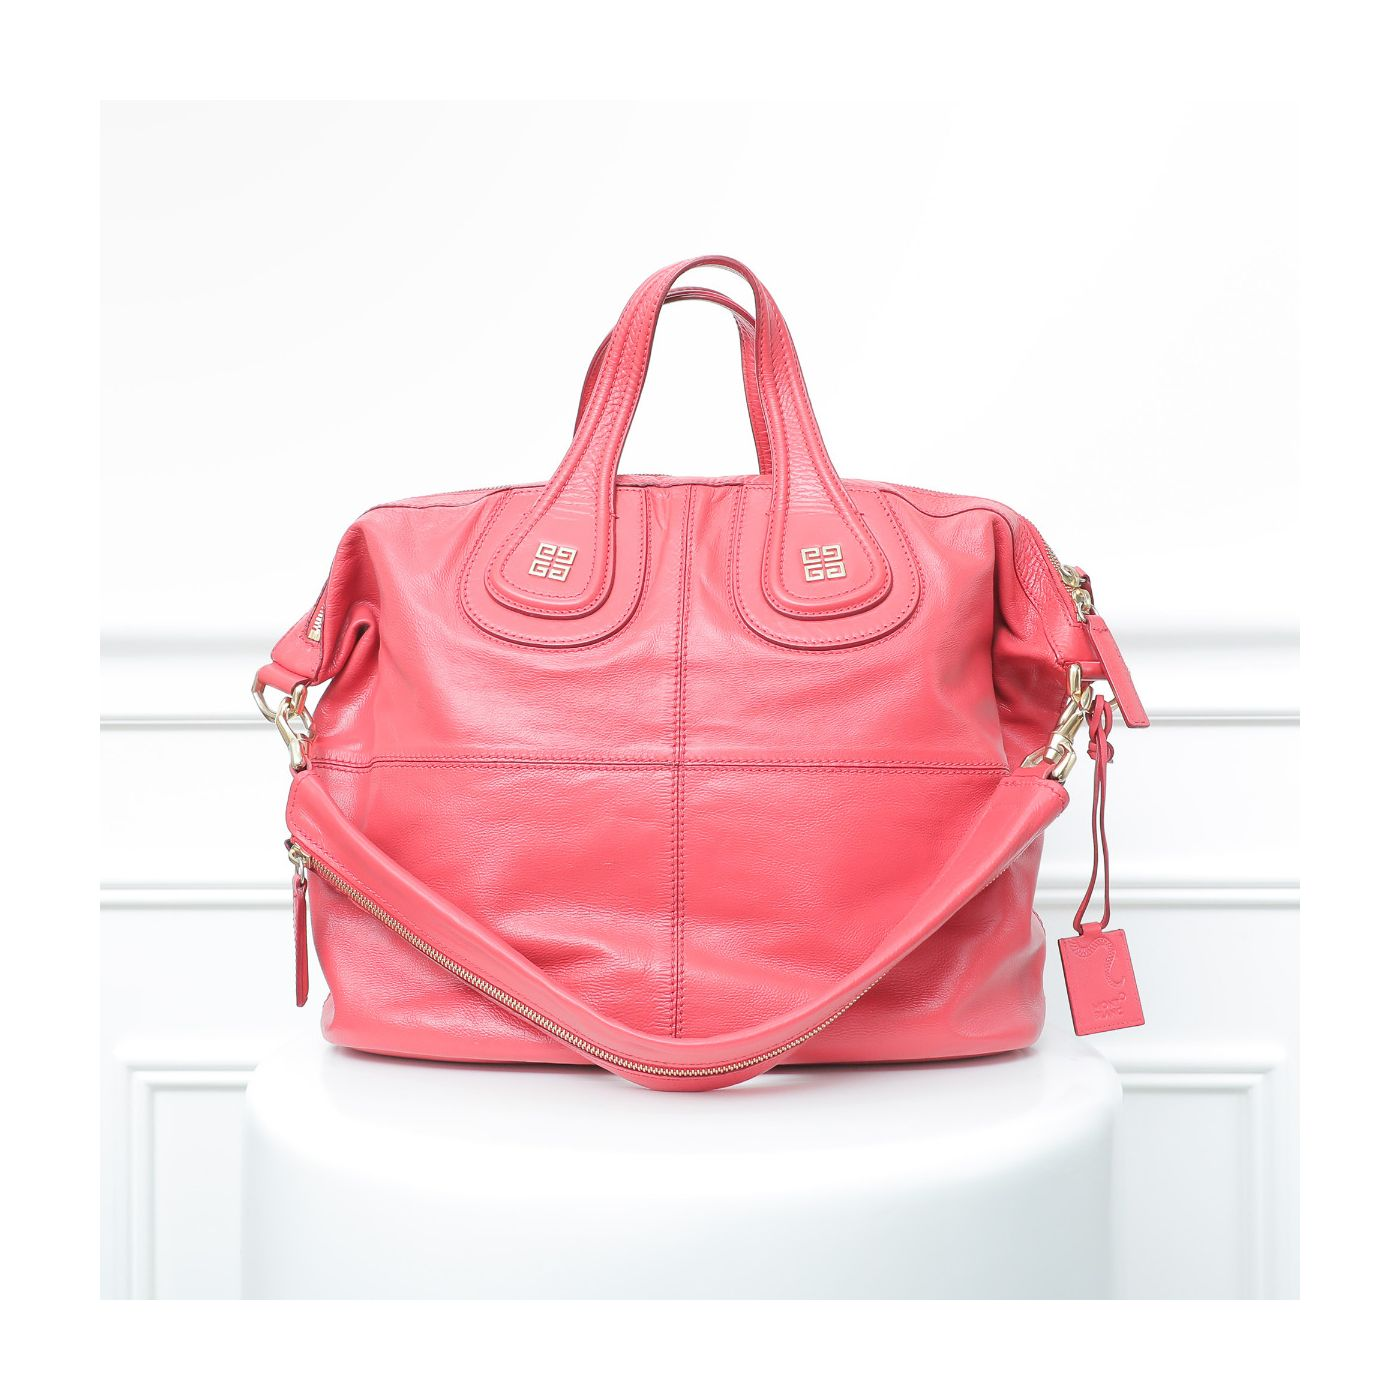 Givenchy Coral Red Nightingale Tote Large Bag